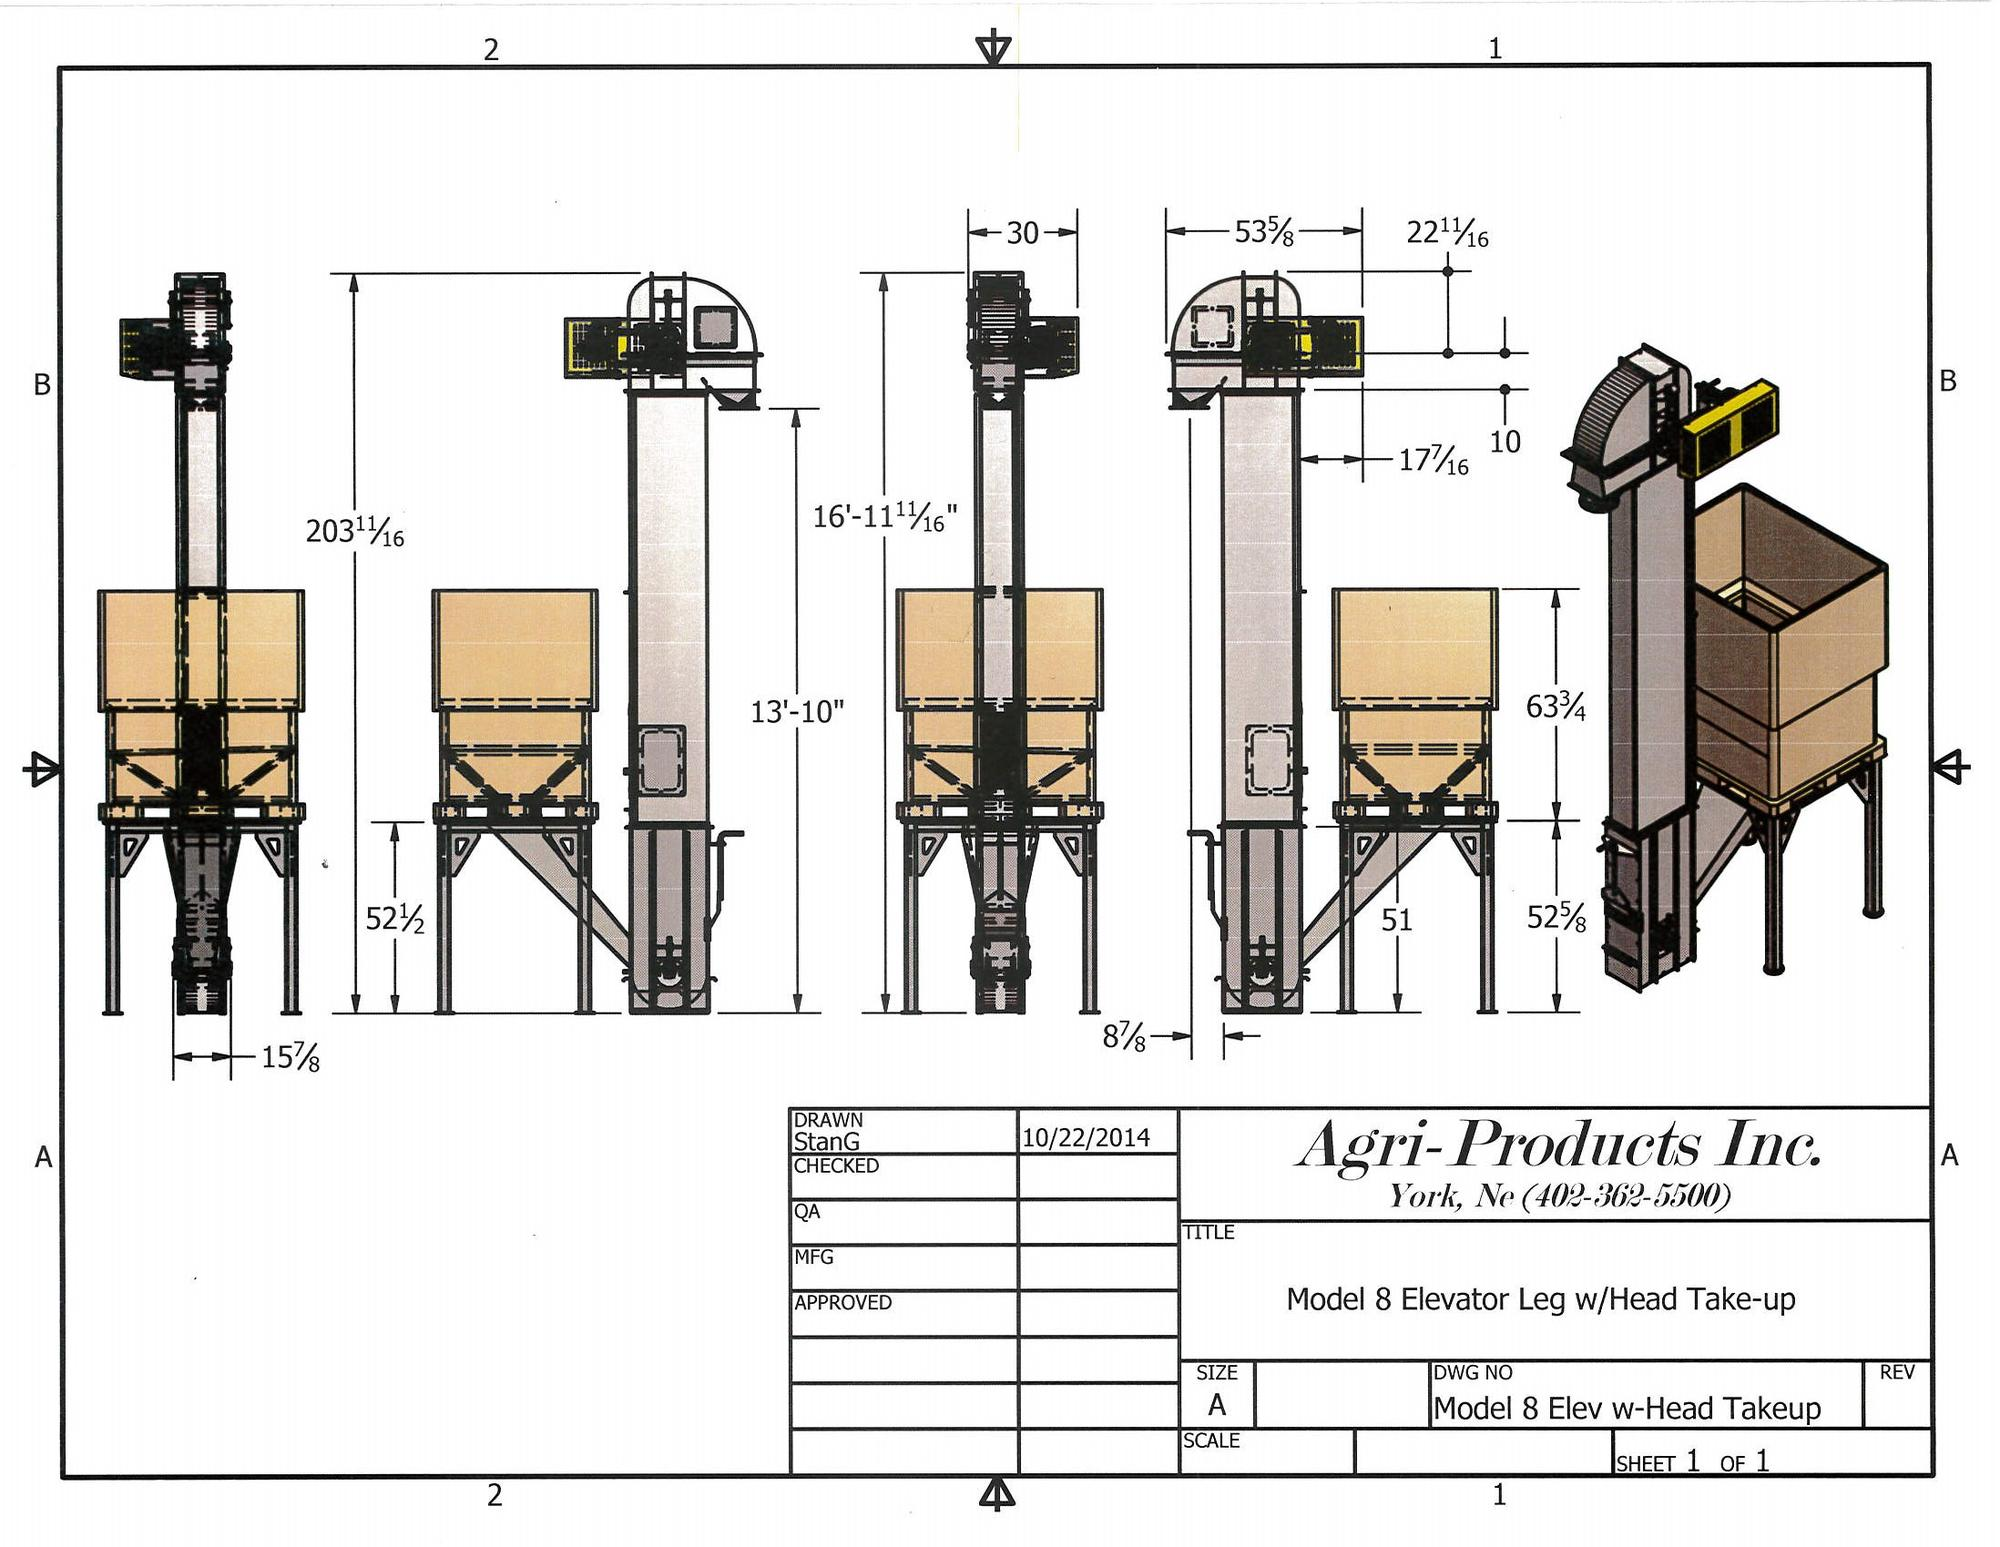 hight resolution of cad drawing of a model 8 seed elevator with a stand for a pro box to feed elevator